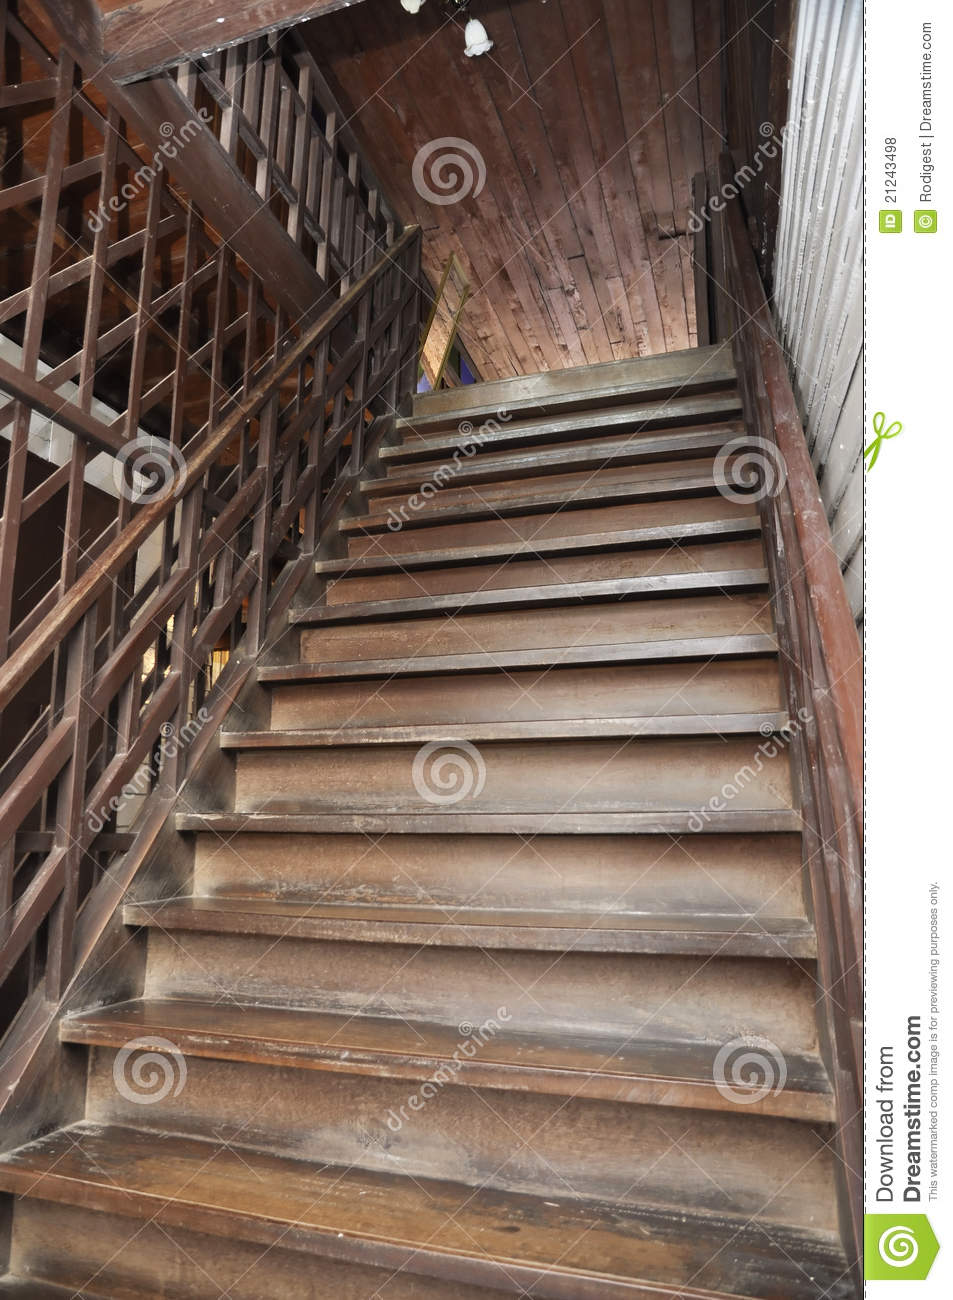 Brown Old Style Wood Ladder Home Stock Photo  Image of pillar house 21243498